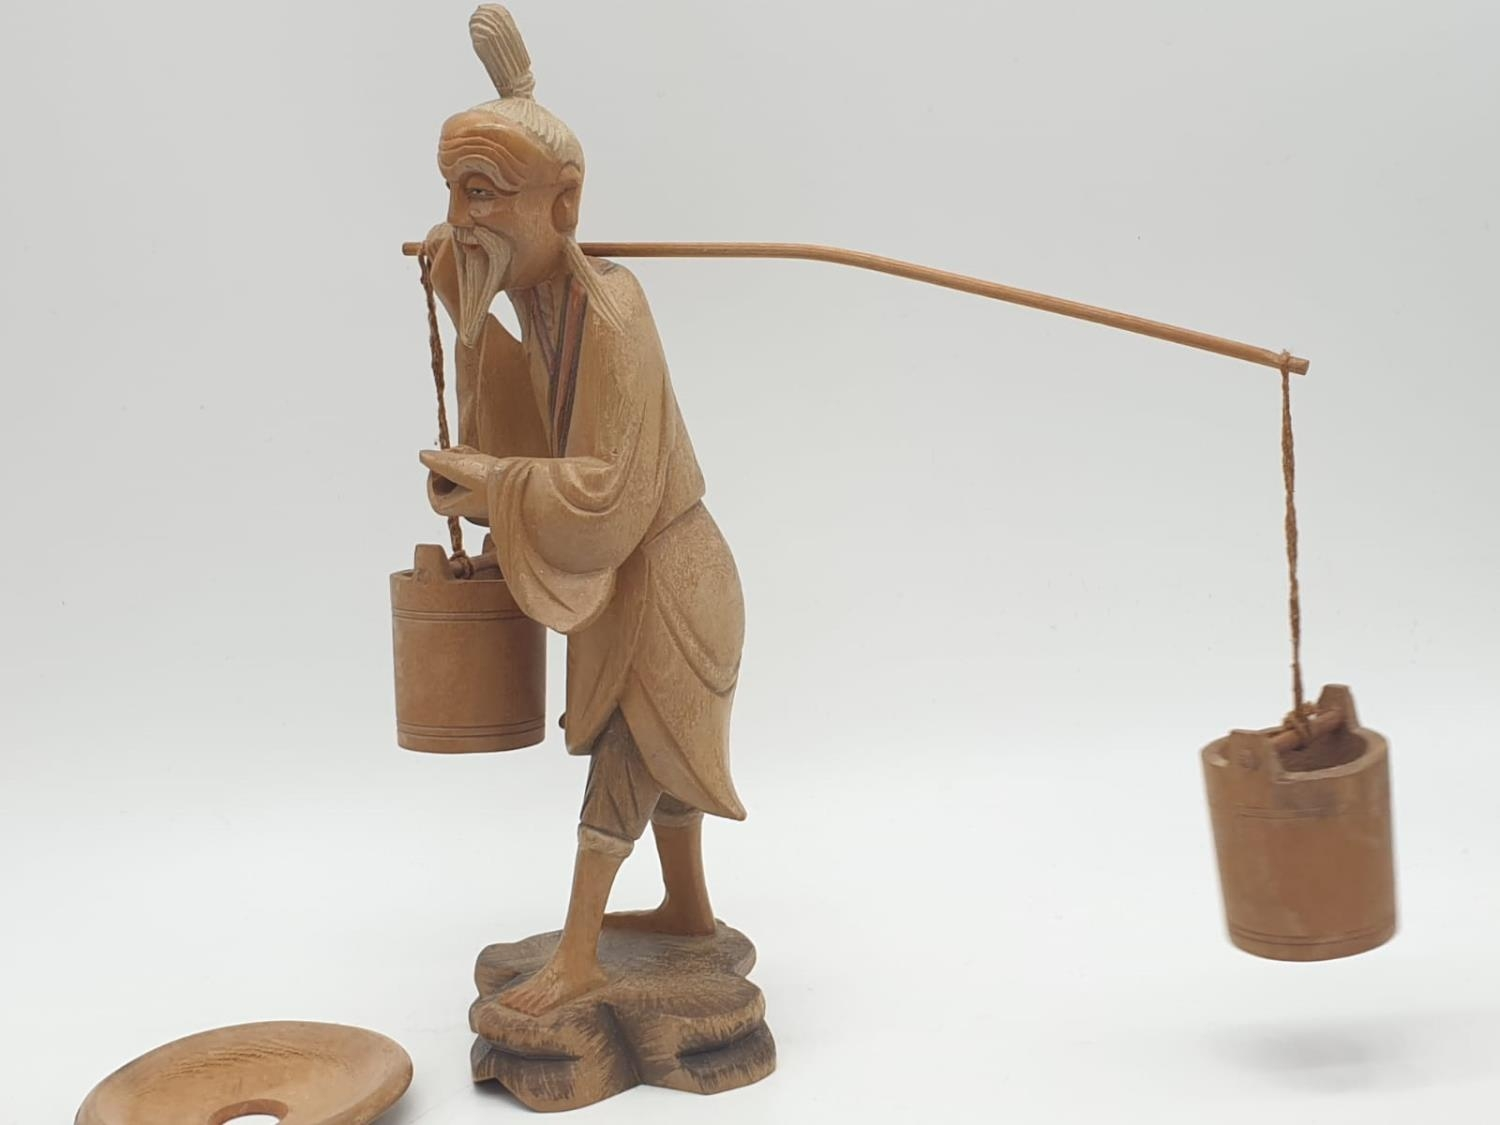 Hand carved wooden figure a Chinese pedlar. 20cm tall. - Image 3 of 7